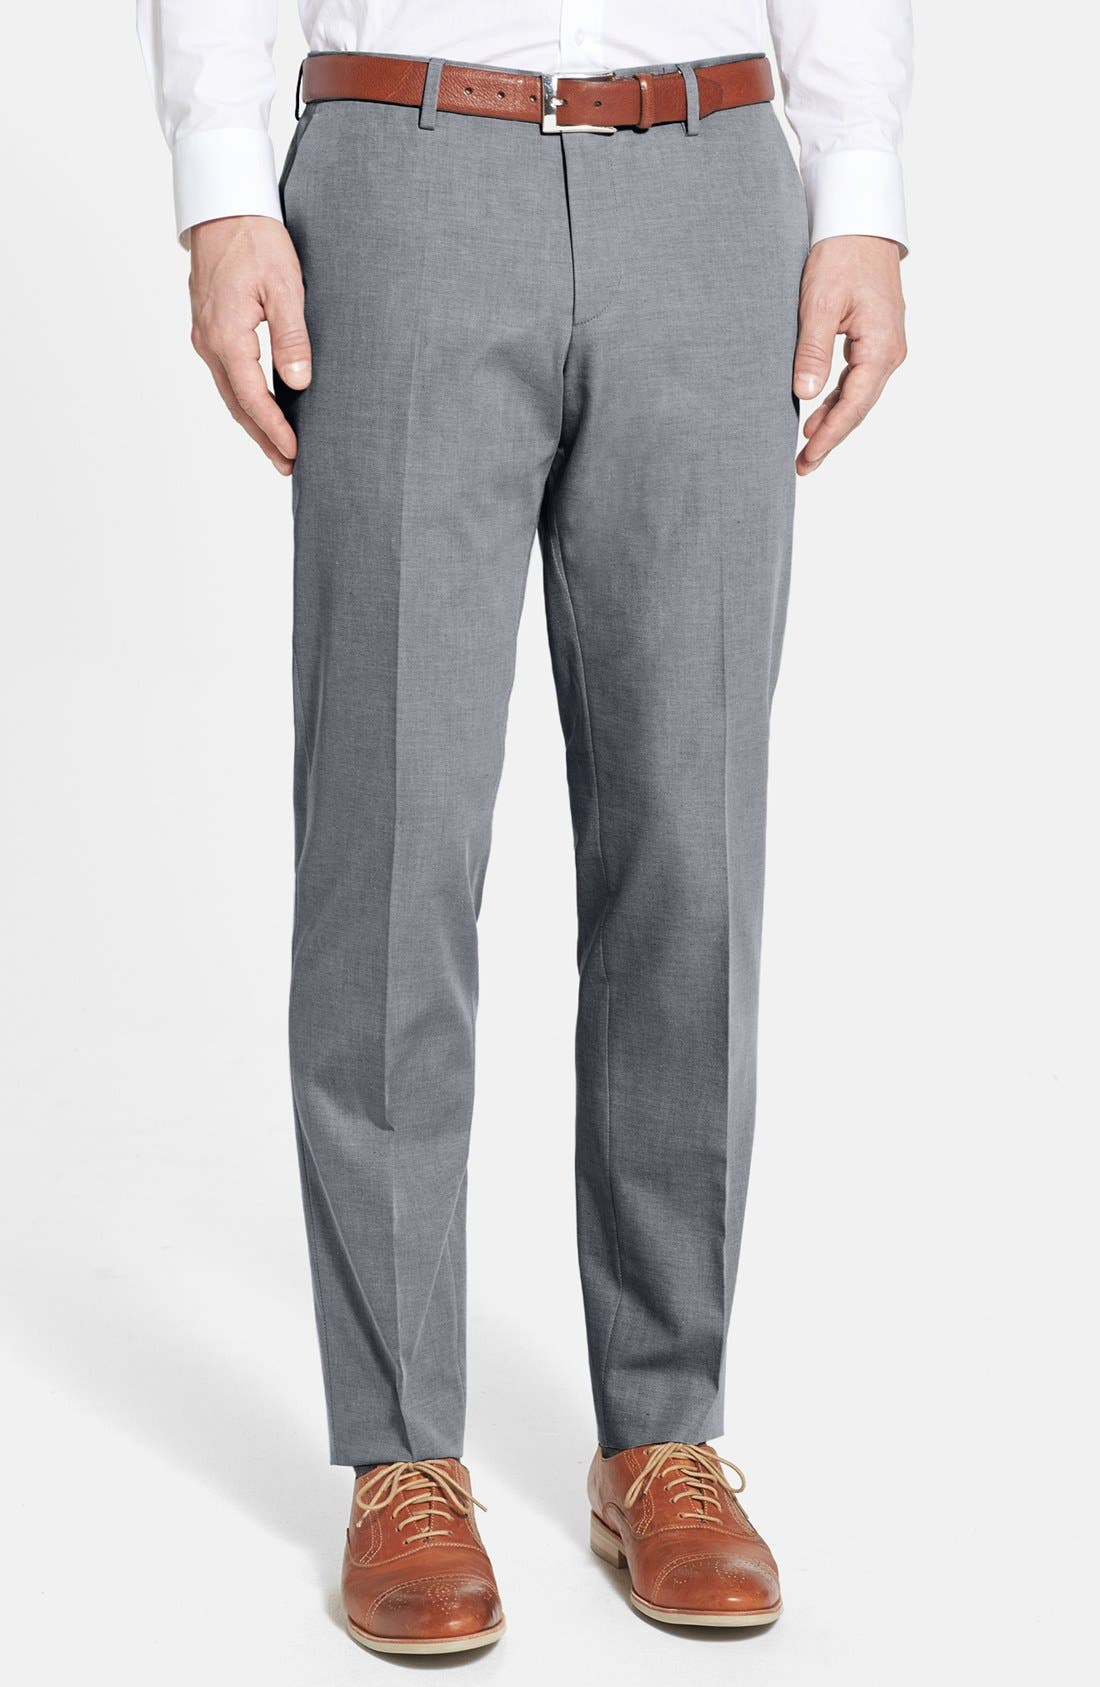 Alternate Image 1 Selected - BOSS HUGO BOSS 'Genesis' Flat Front Cotton Trousers